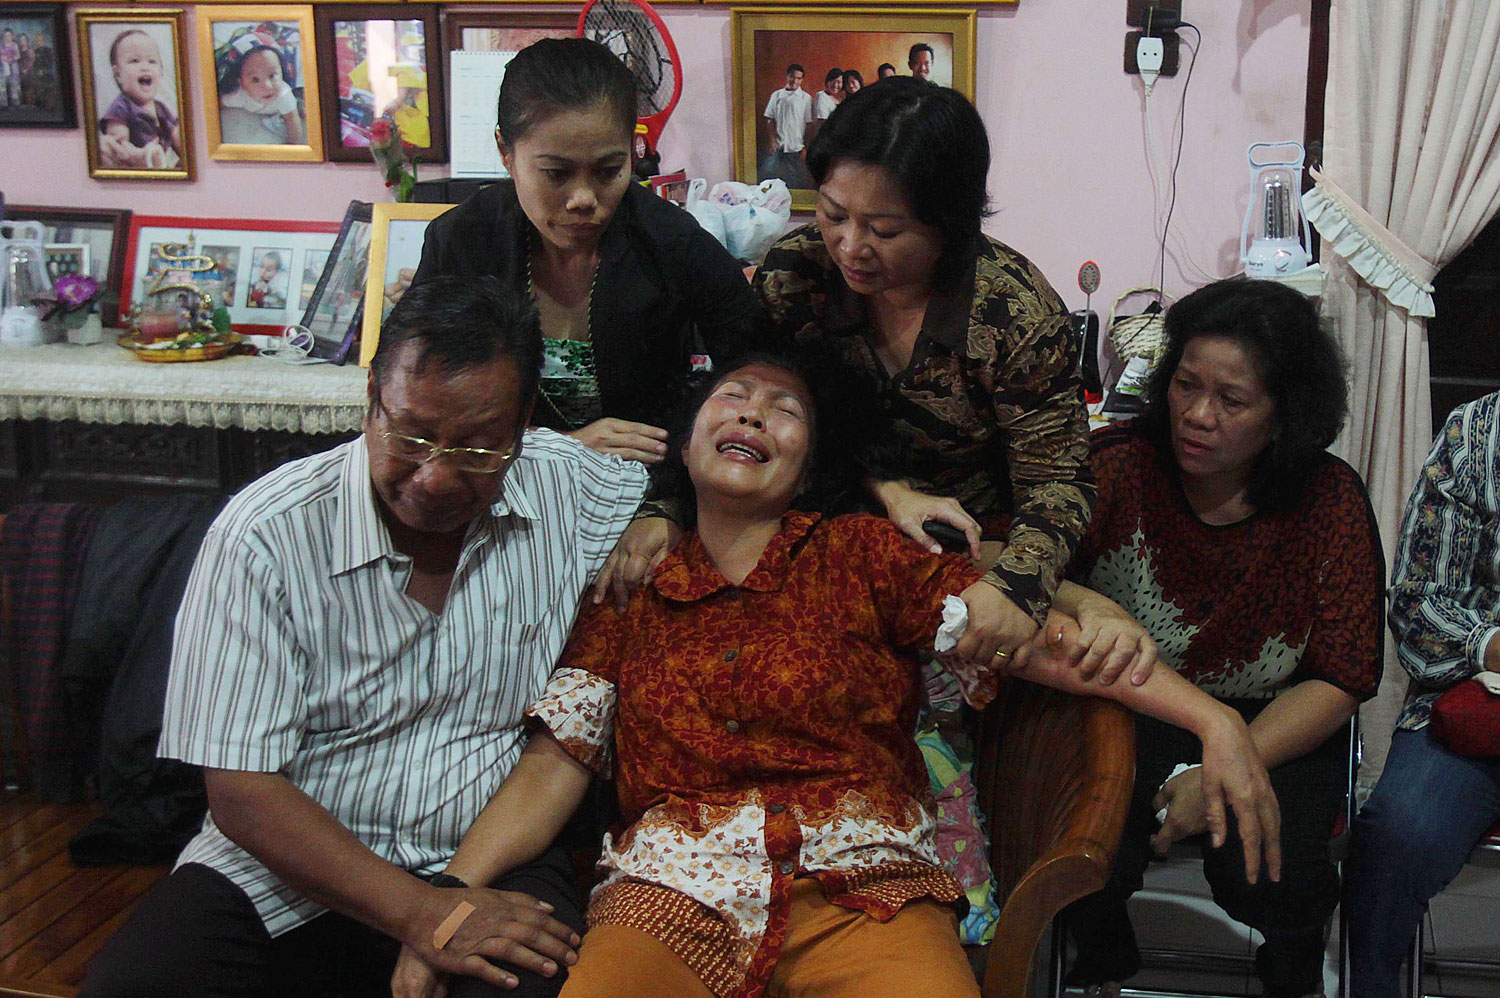 Risman Siregar, left, comforts his wife Erlina Panjaitan, center — both are parents of Firman Chandra Siregar, a 24-year-old Indonesian passenger of Malaysia Airlines Flight 370 — on March 9, 2014, in Medan, Indonesia